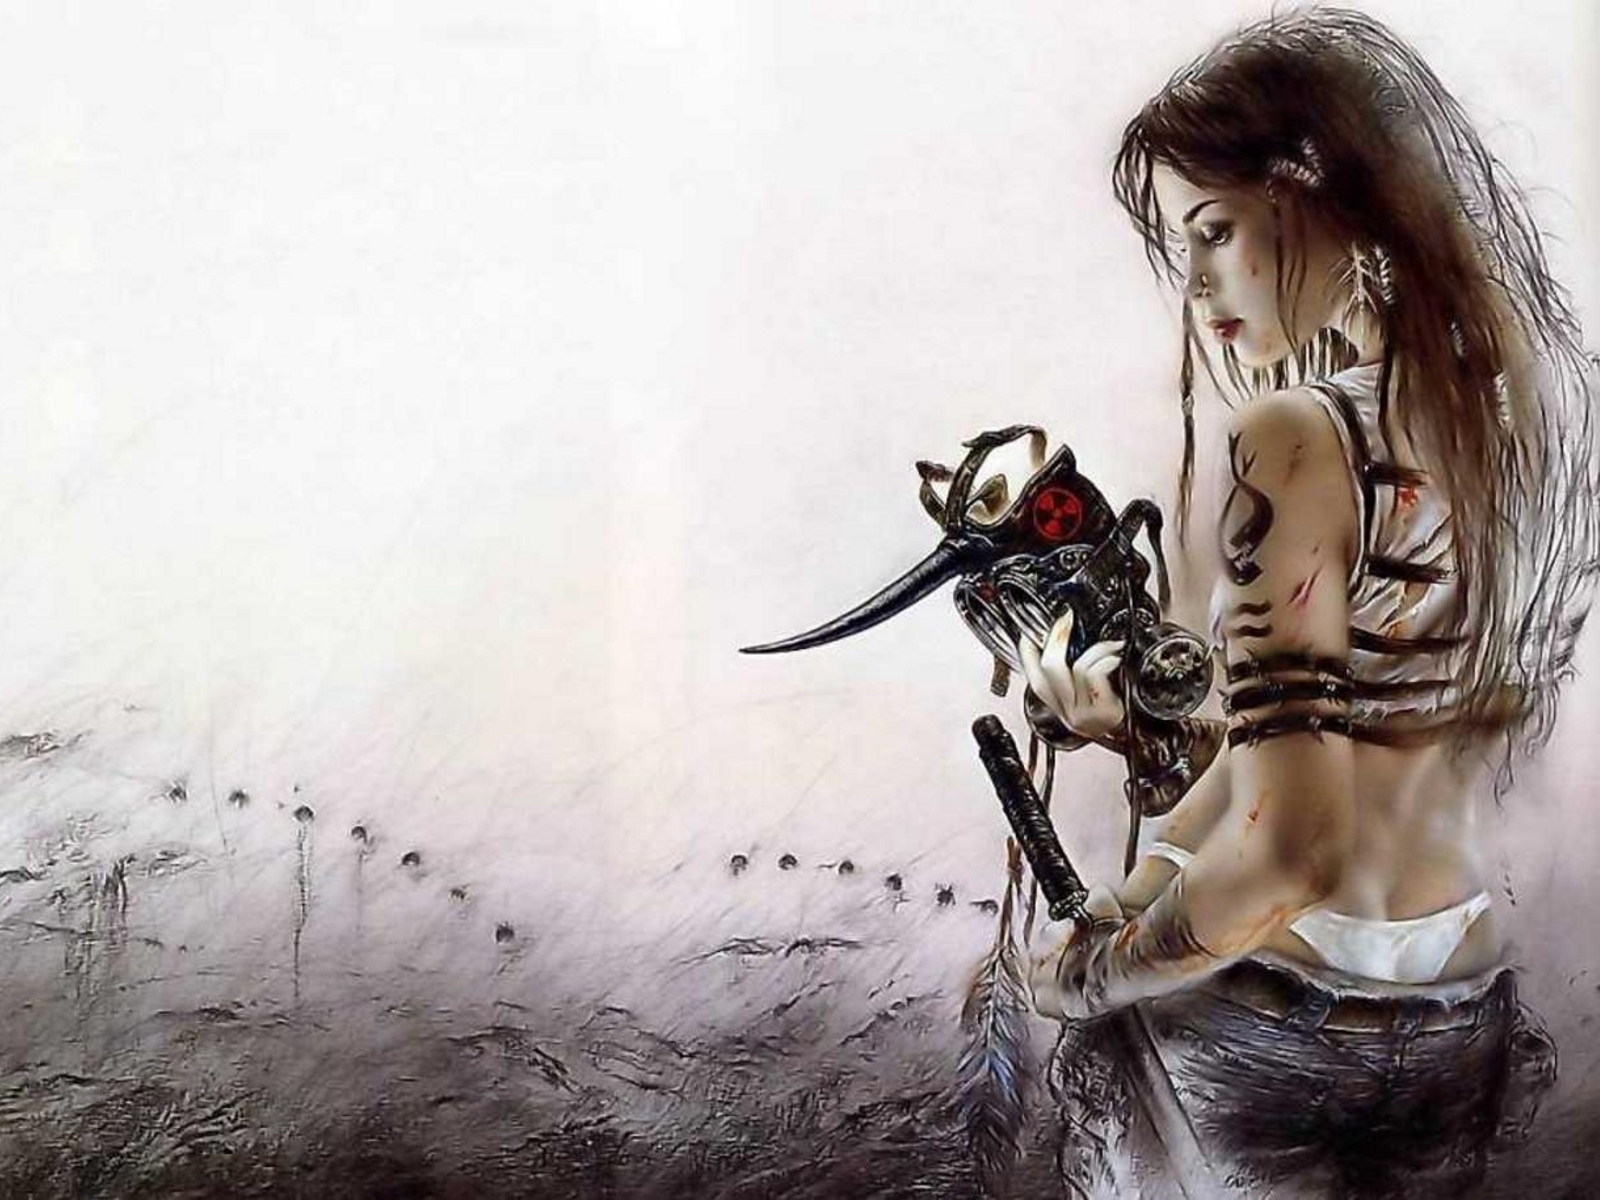 Luis royo images luis royo hd wallpaper and background photos luis royo images luis royo hd wallpaper and background photos download image voltagebd Choice Image